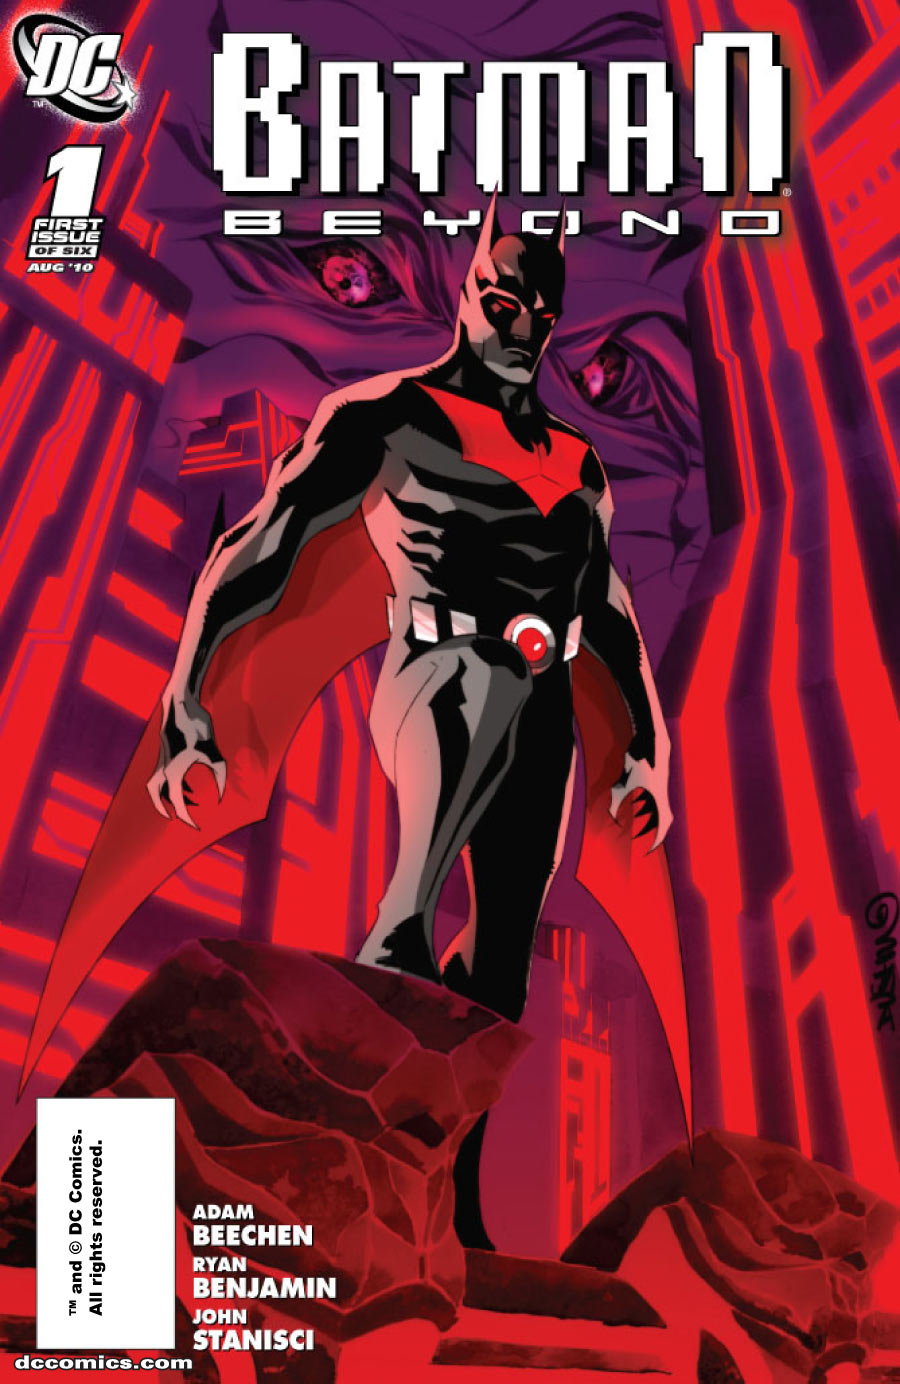 DEVIL COMICS ENTERTAINMENT: Batman Beyond #